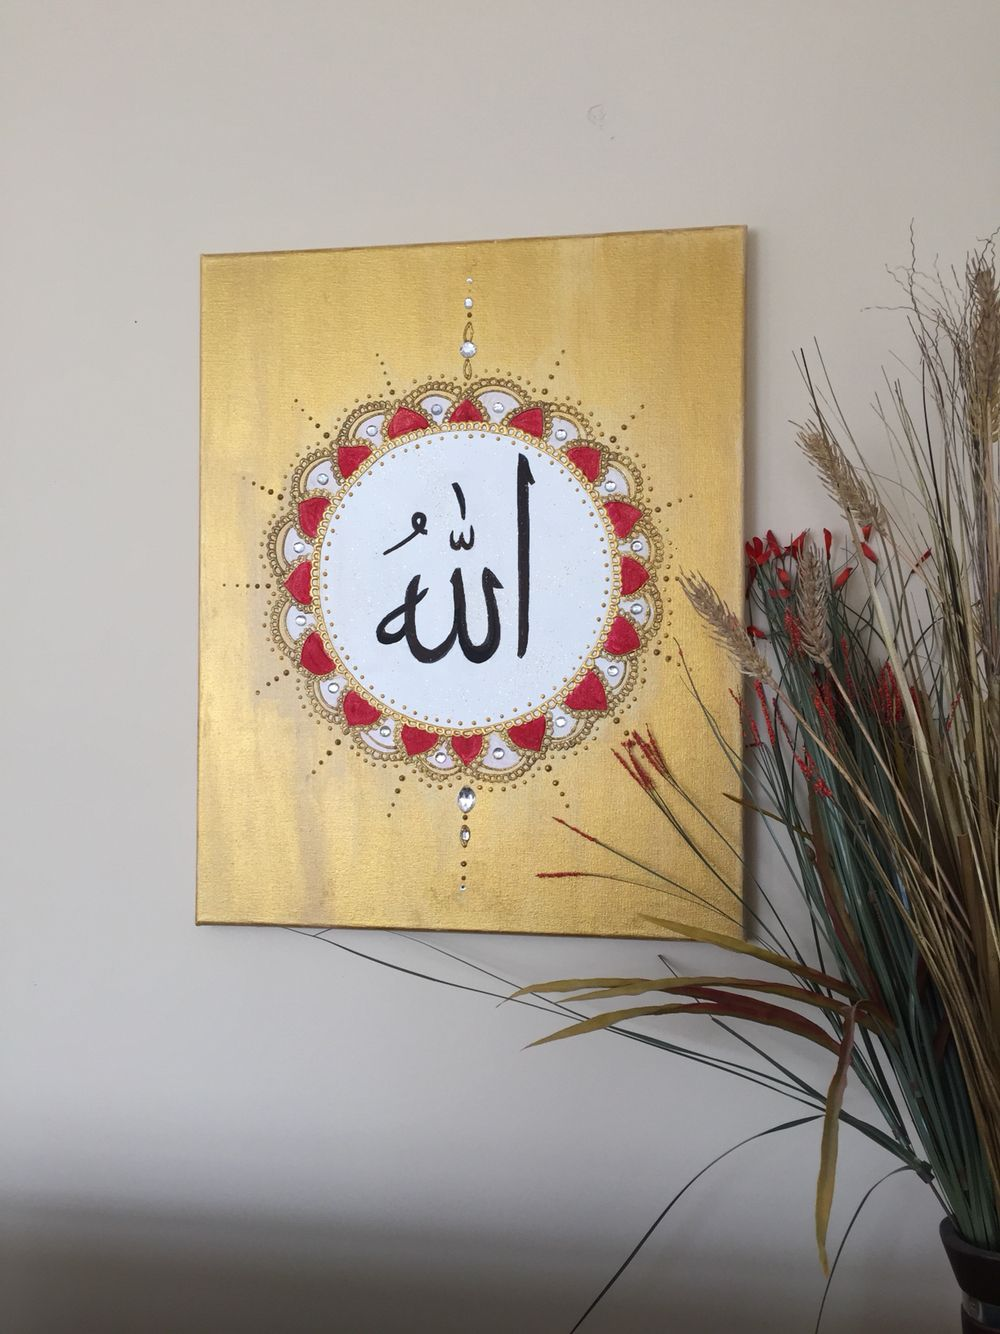 Pin by My Veil Arts, Gifts & Decor on Islamic art | Pinterest ...